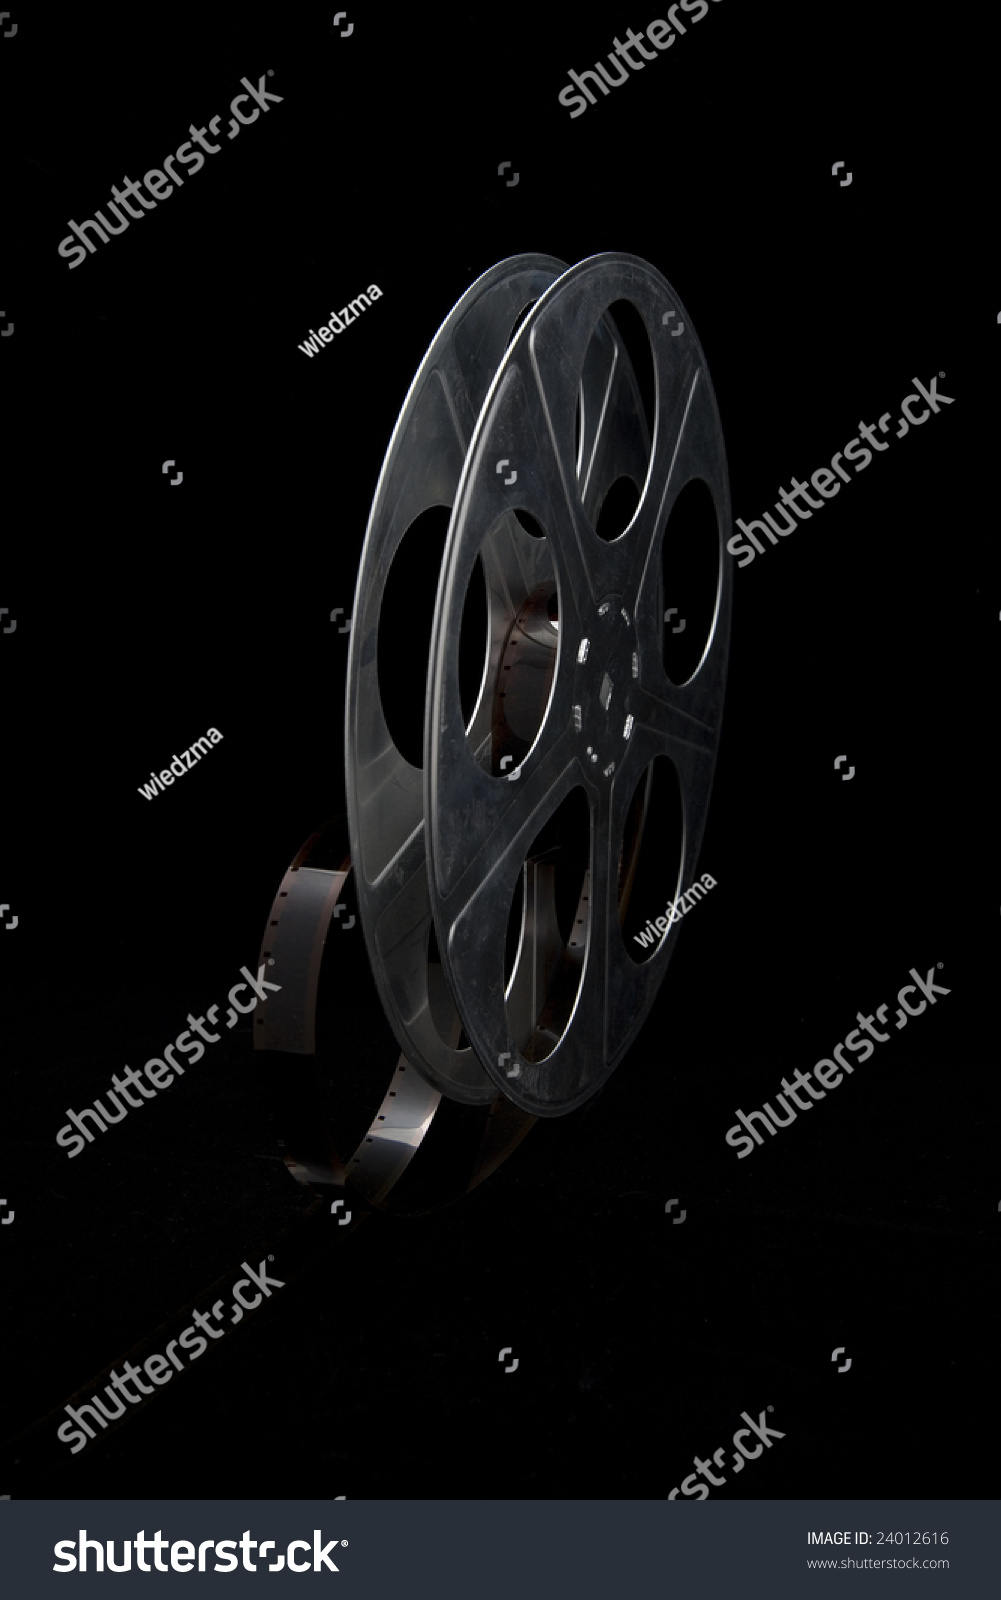 Film Reel On Black Background Stock Photo 24012616 ...